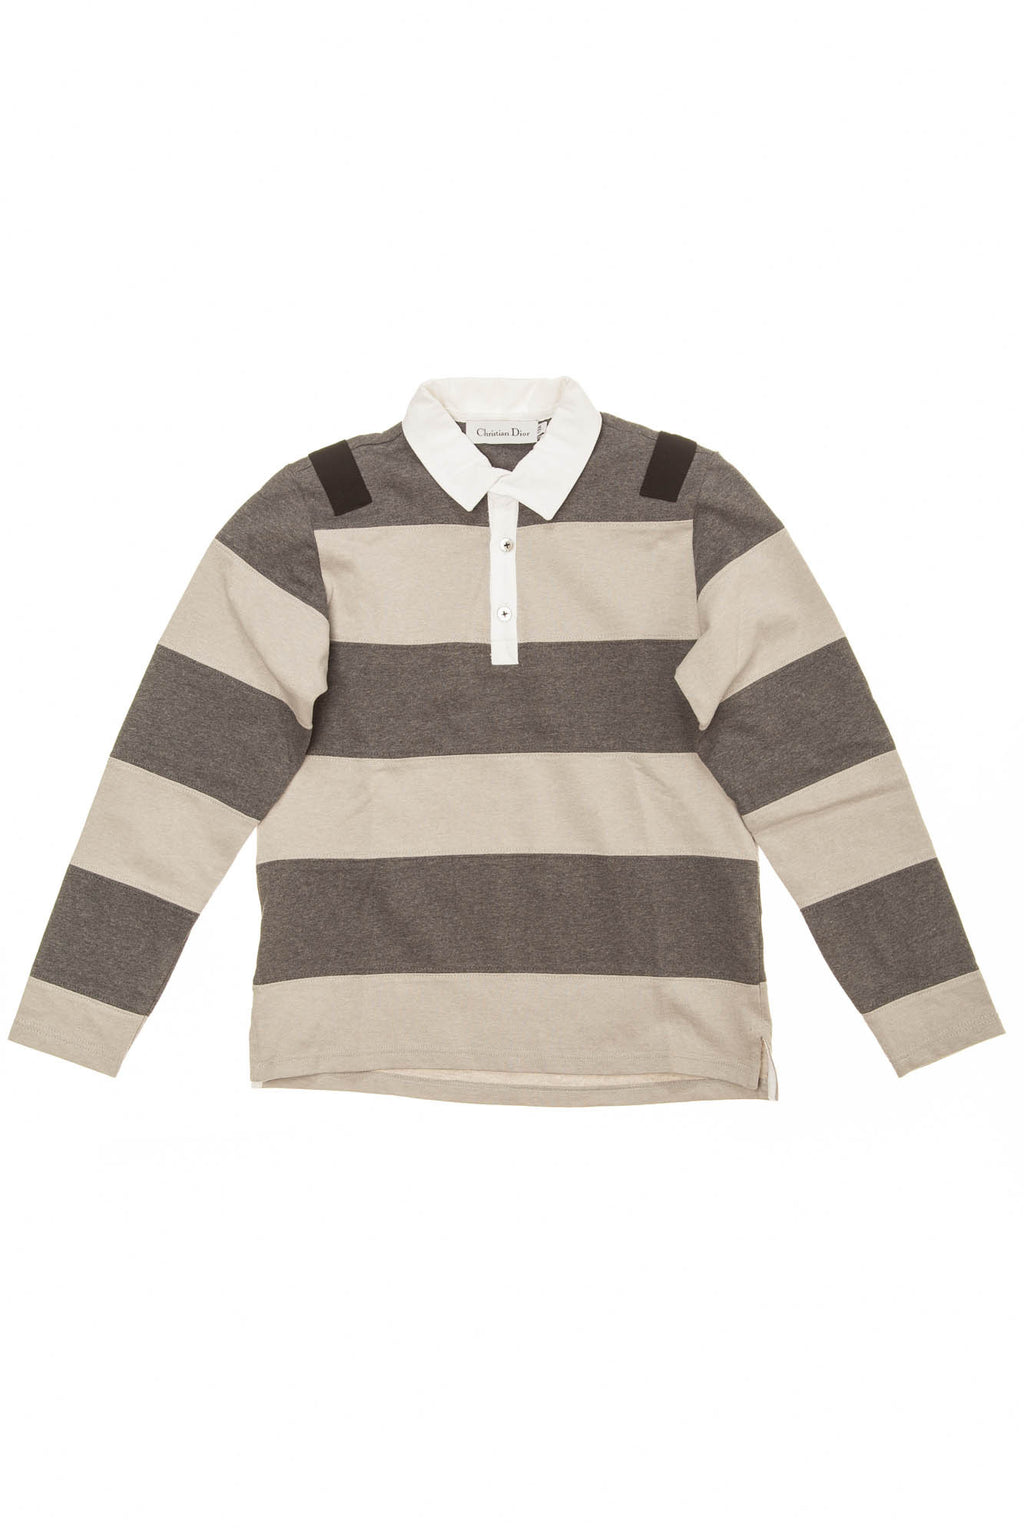 Christian Dior - Long Sleeve Gray Striped Polo - 12A